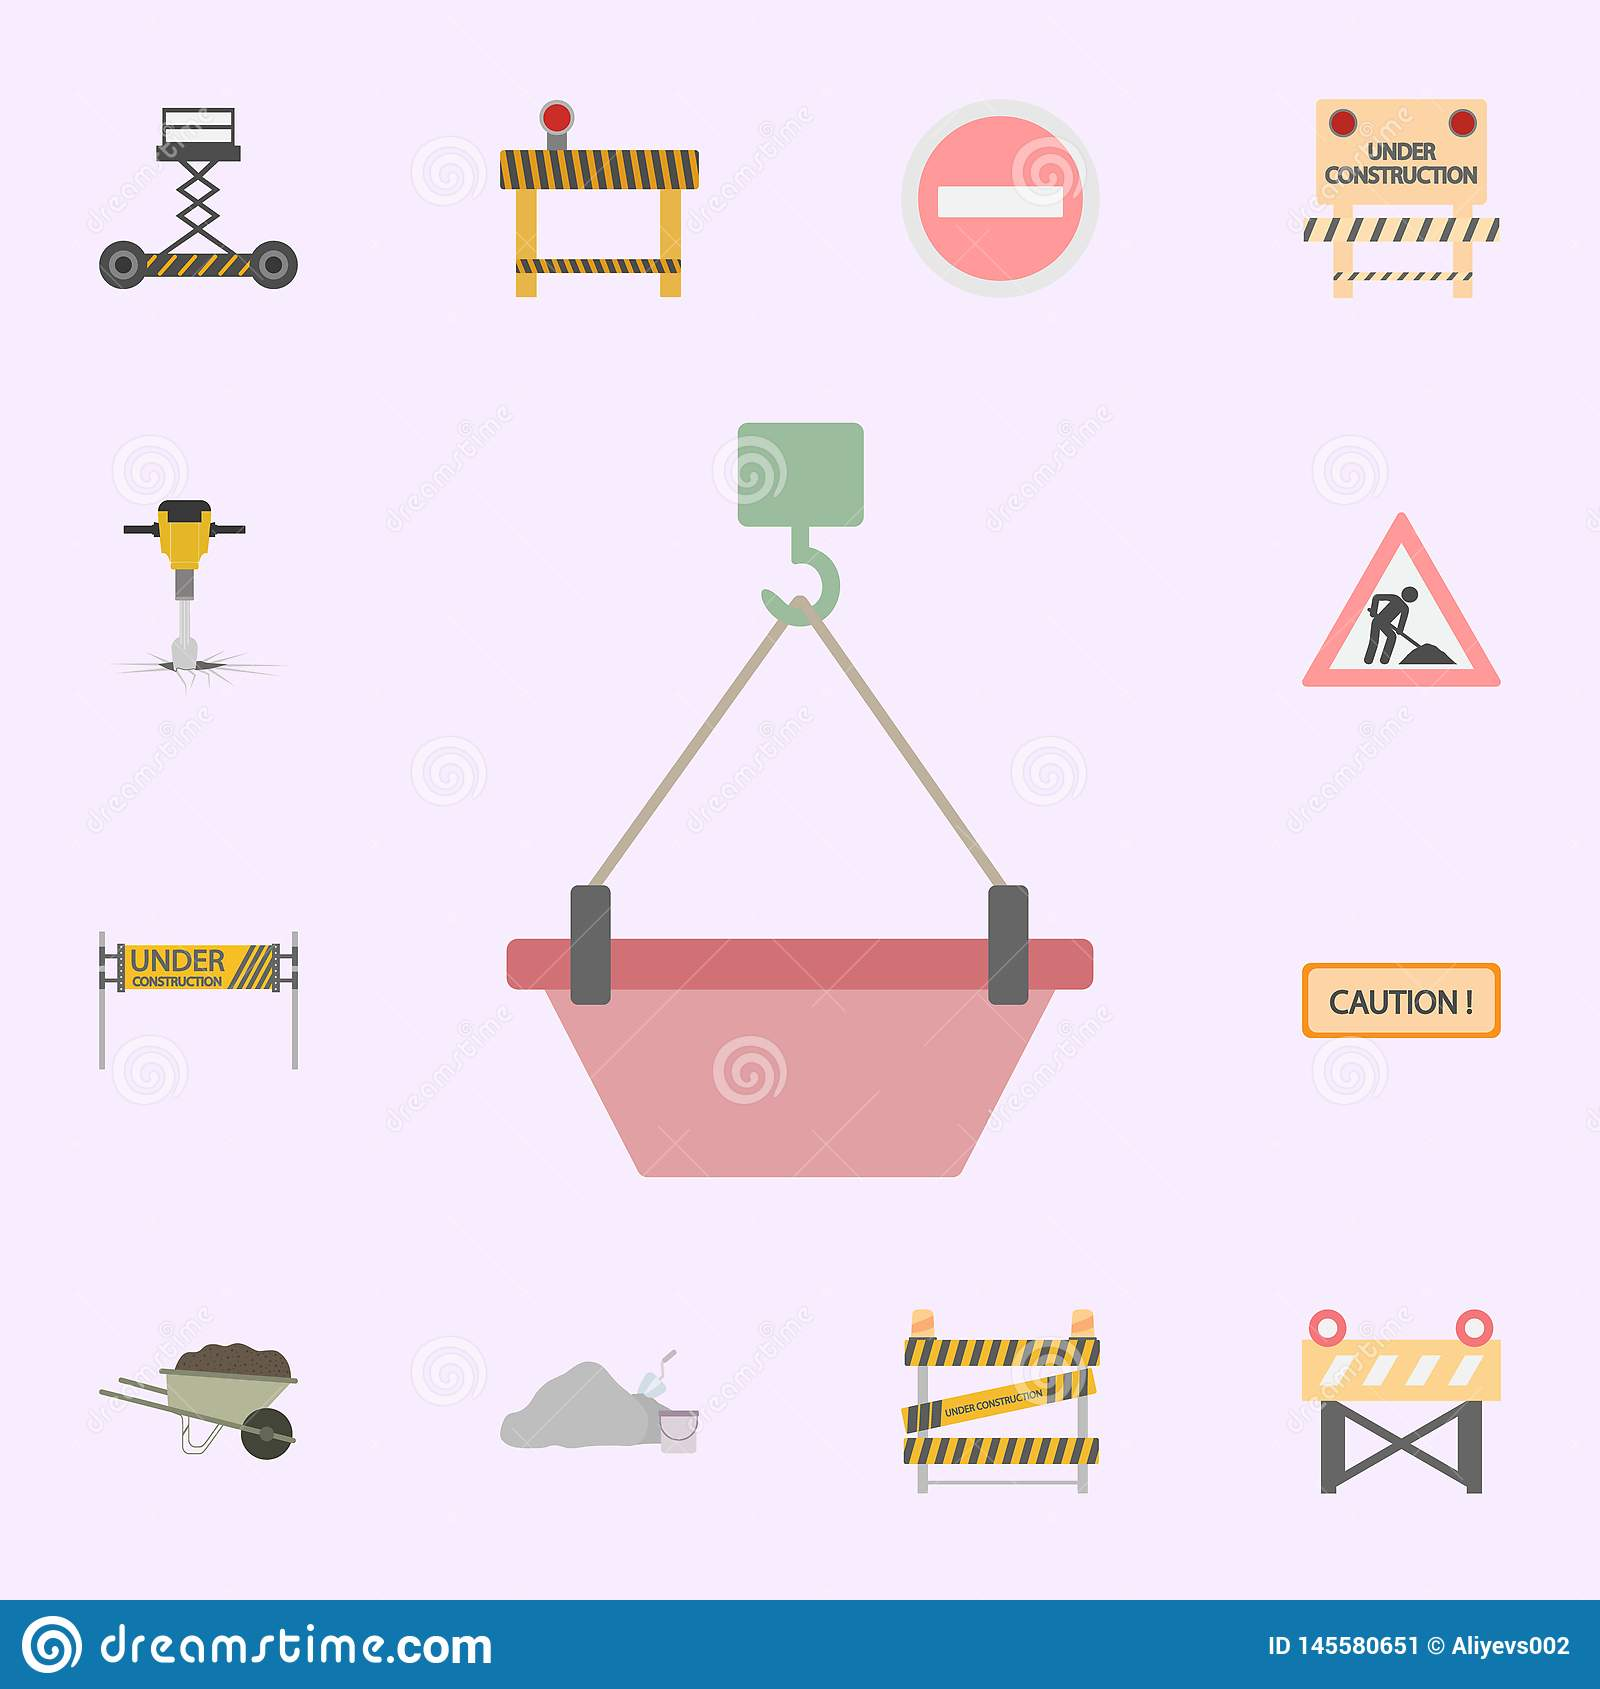 hight resolution of crane hook with concrete colored icon building materials icons universal set for web and mobile